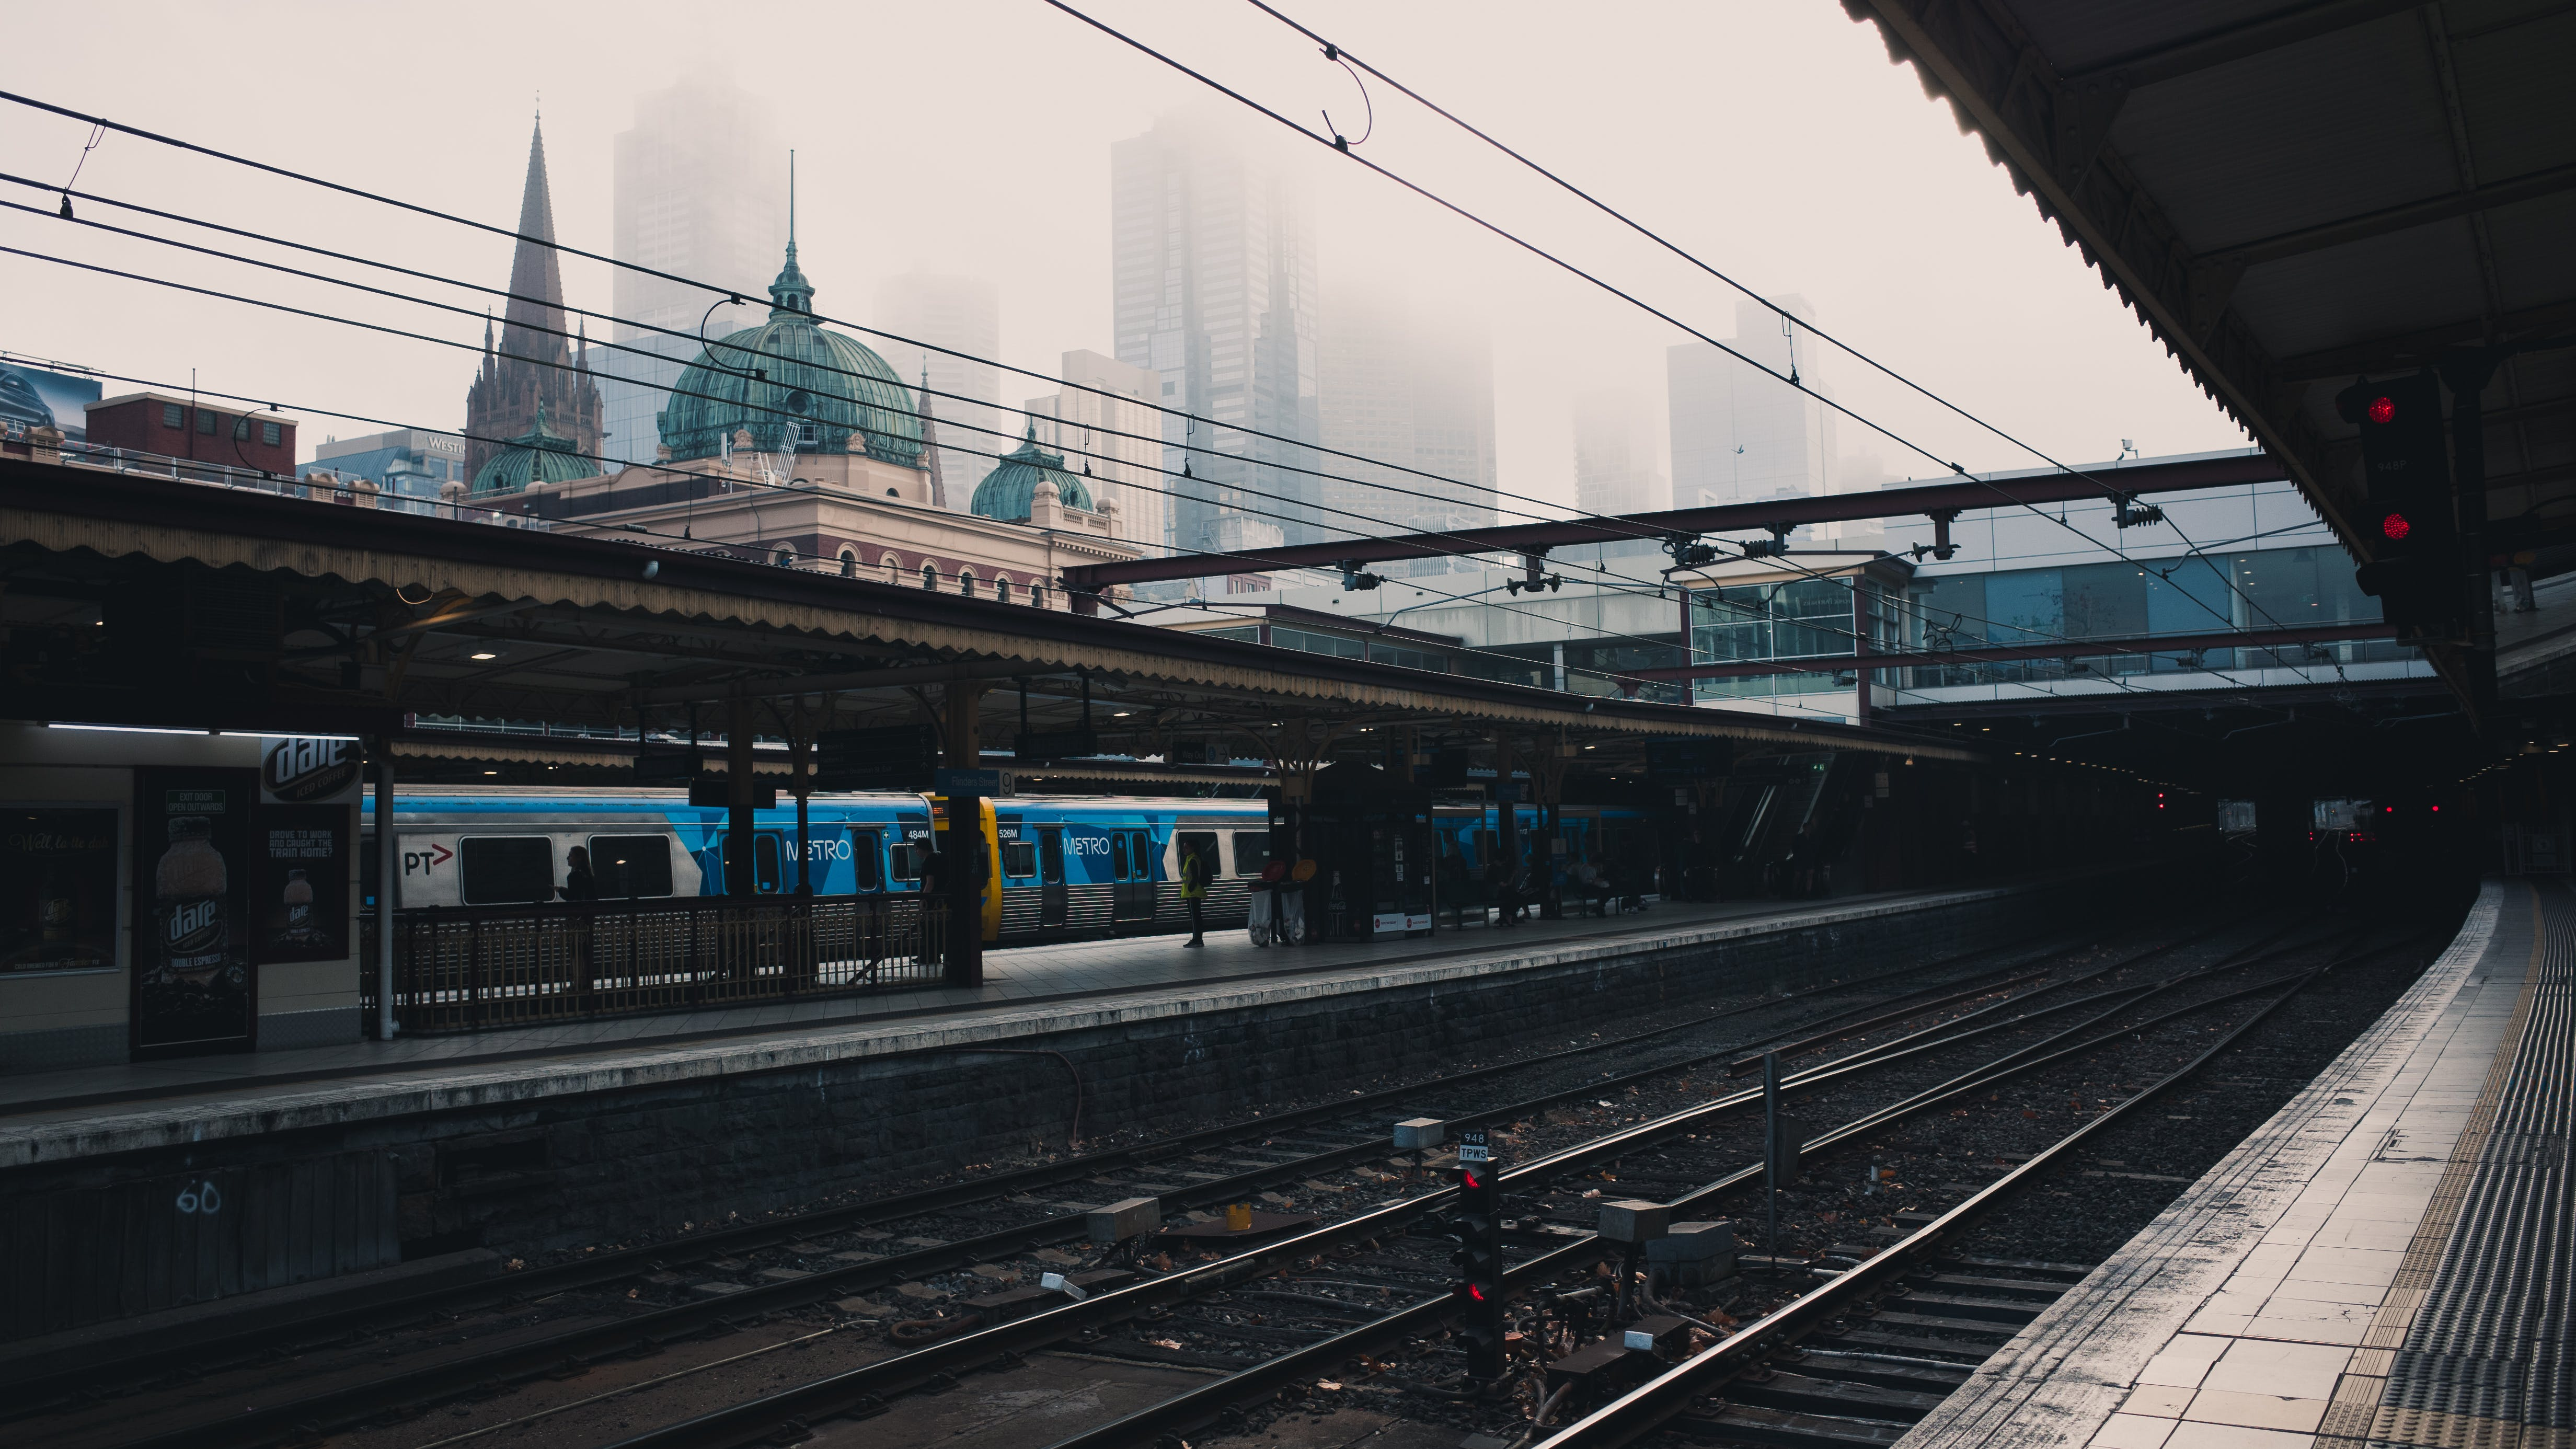 Stock Photography of Blue and White Train at Station